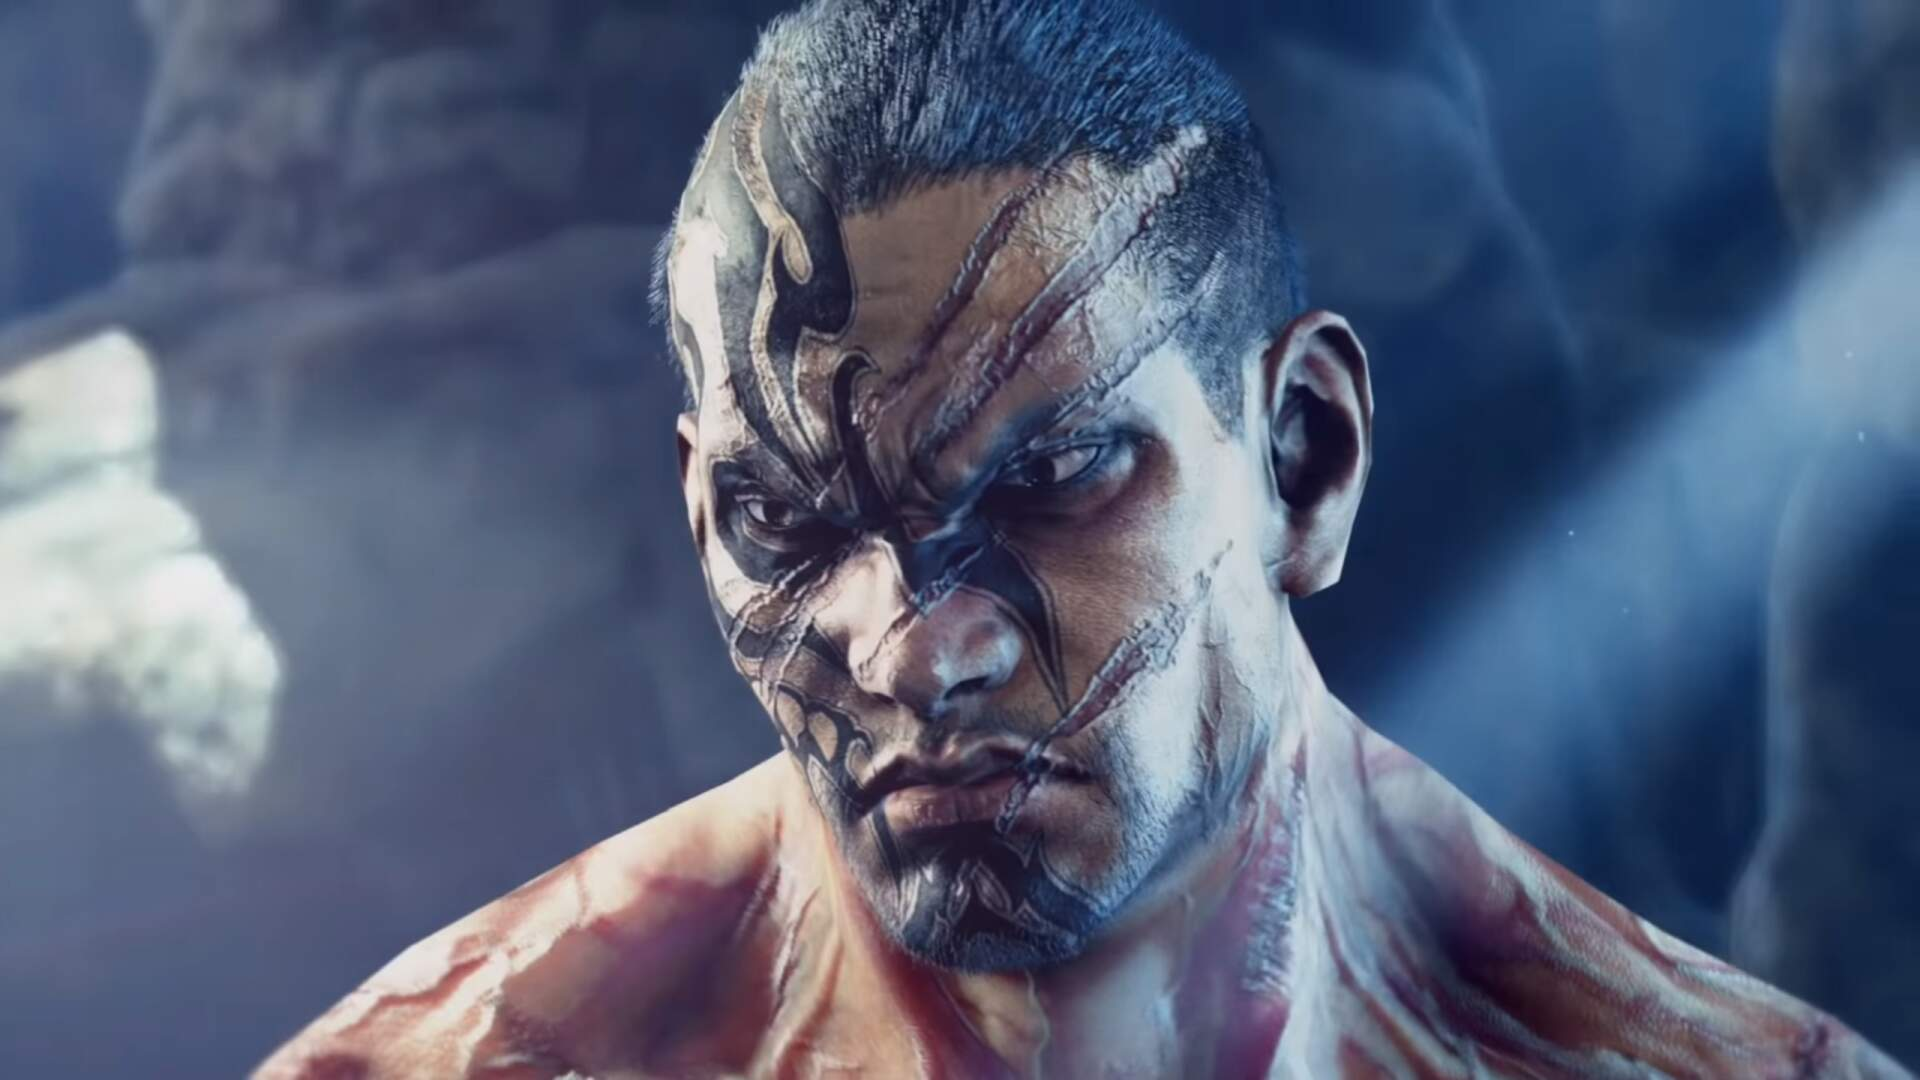 Tekken 7 Brought in Two Popular Muay Thai Champions to Mo-Cap Its Next Character